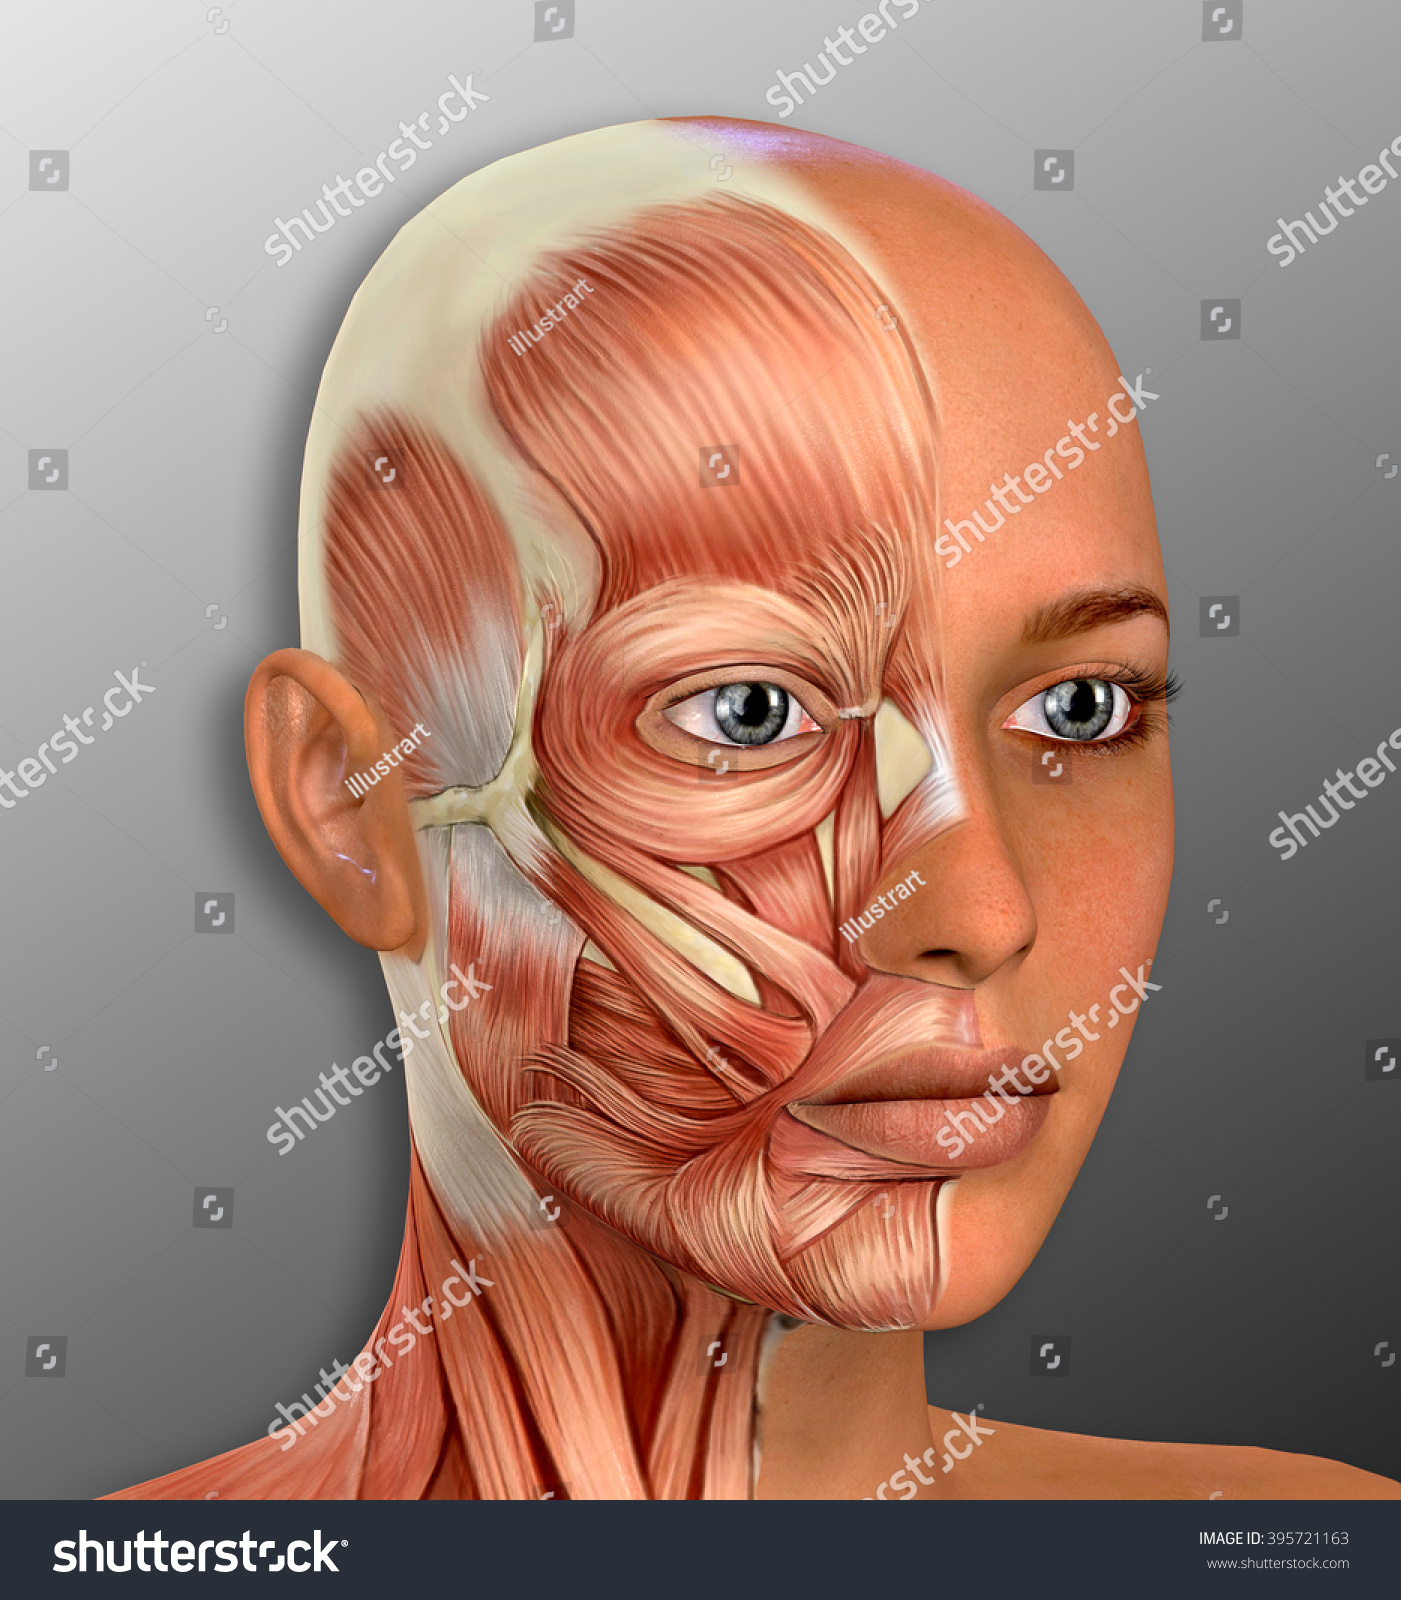 Muscles of face anatomy